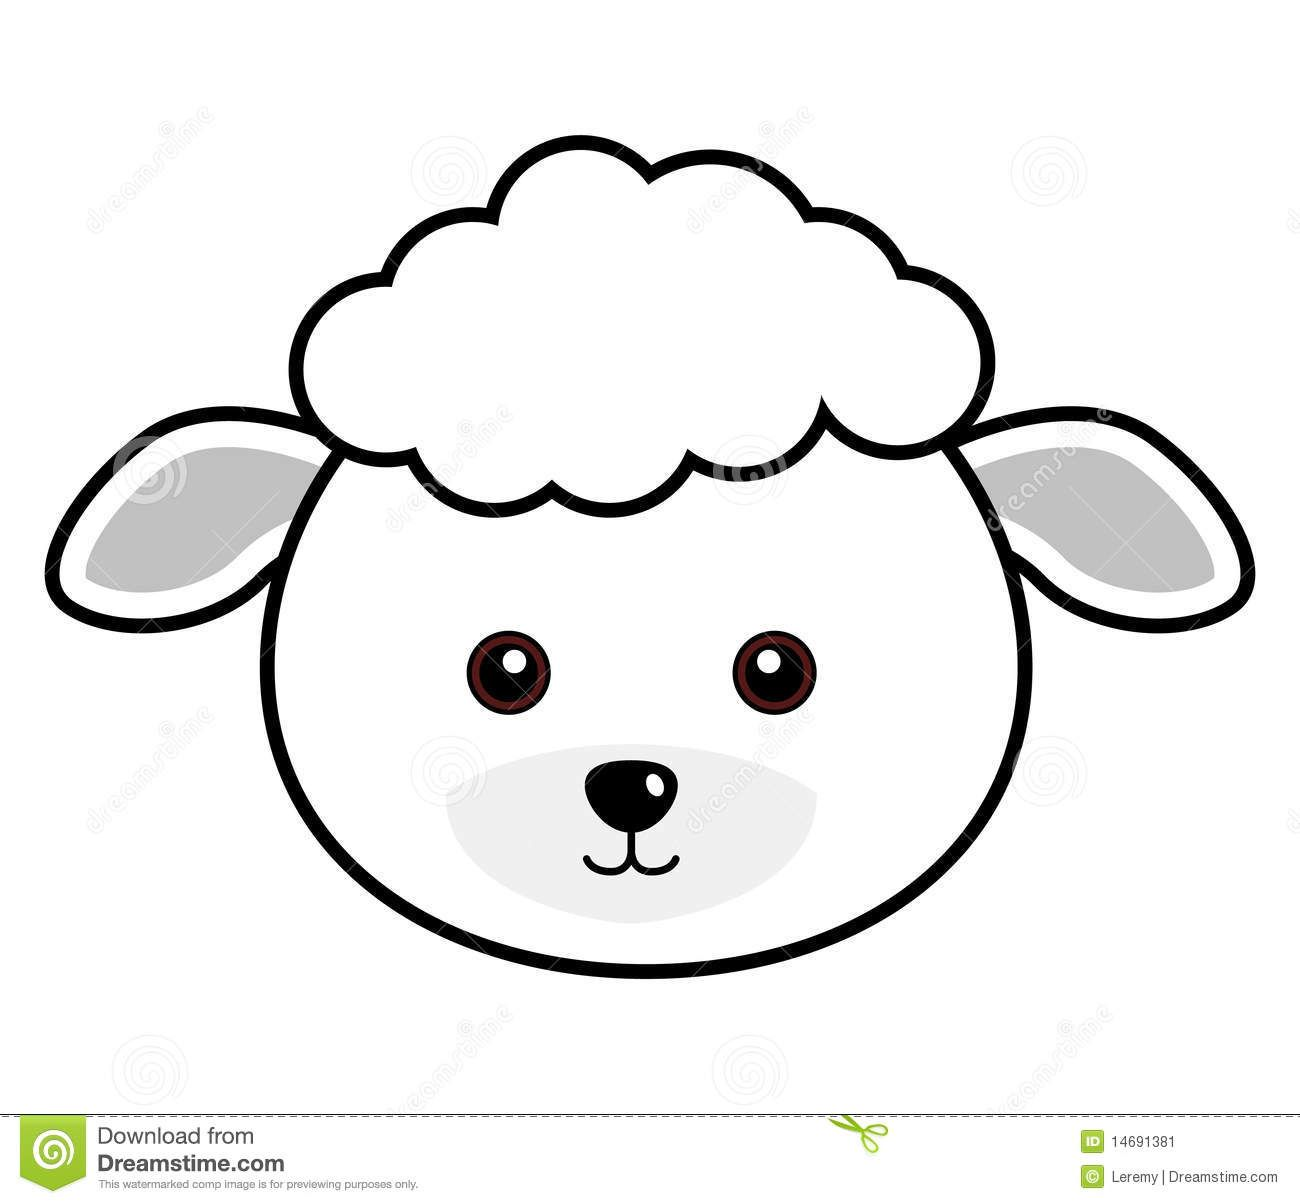 Cute Sheep Face Sheep Face Cute Sheep Sheep Template